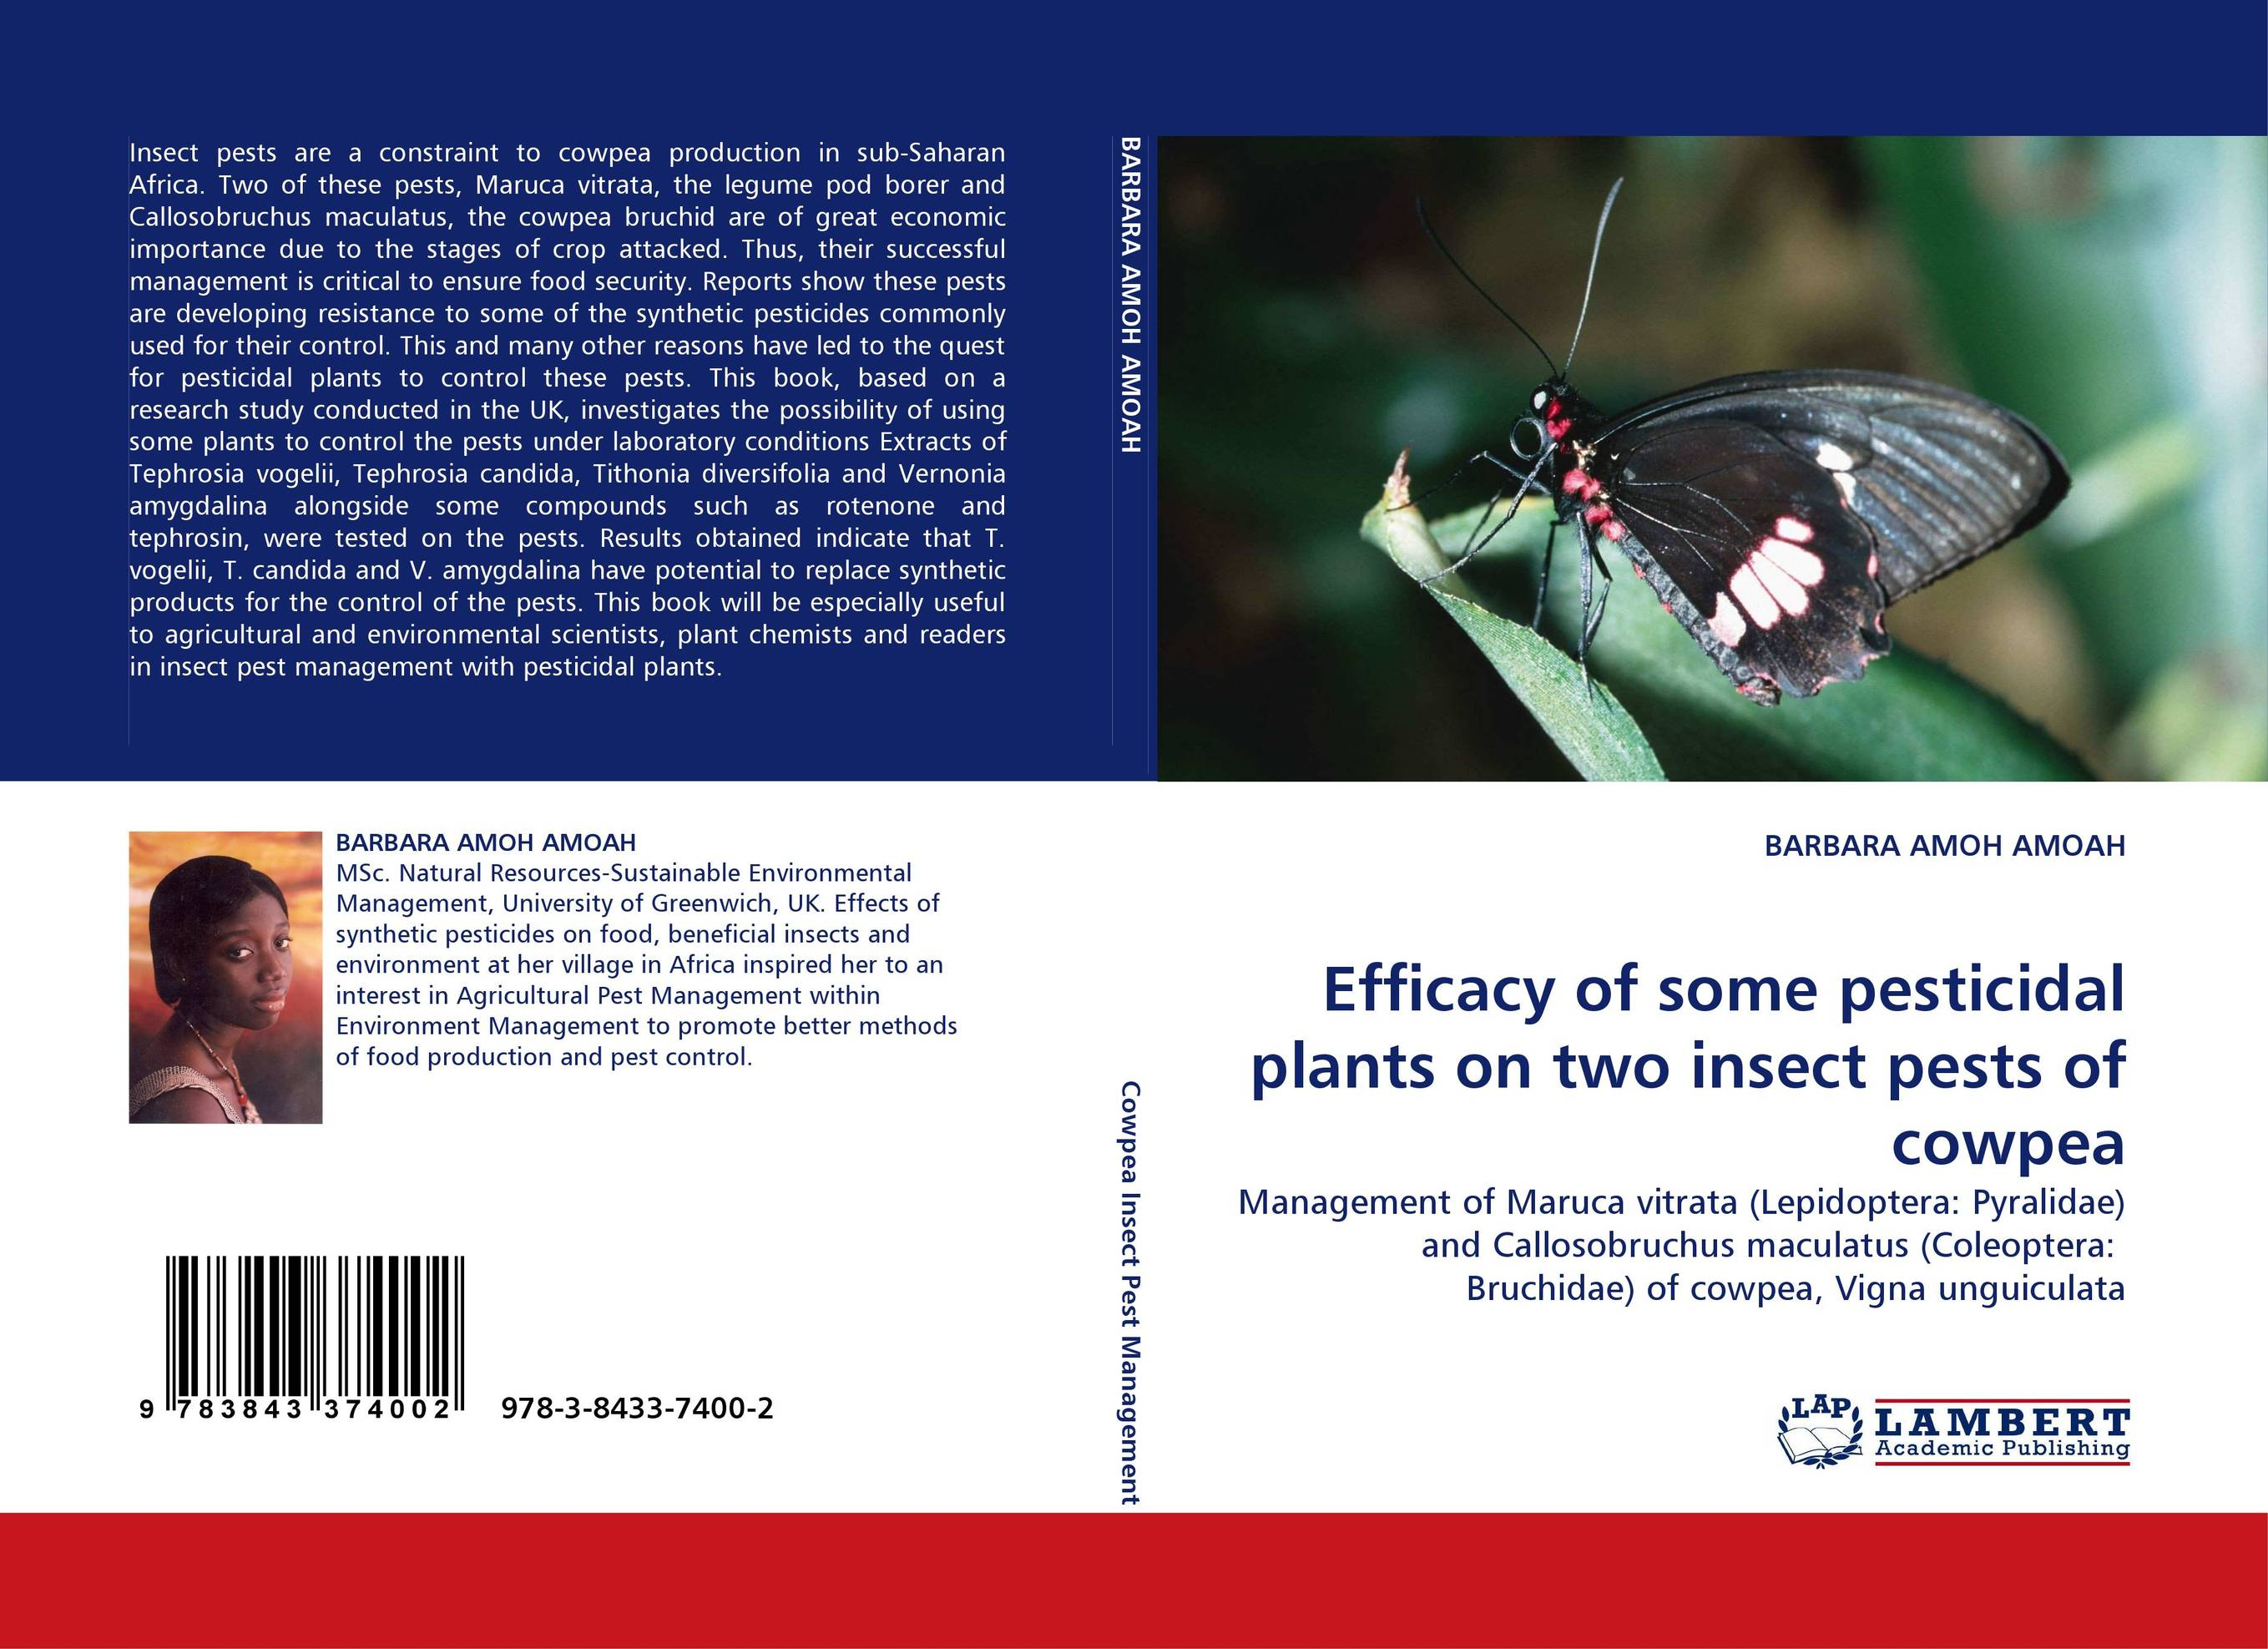 diseases and insect pest management The pest-management concept (w luckmann & r metcalf) ecological aspects of pest management (p price & g waldbauer) parasitoids and predators in management of arthropod pests (m hoy) insect pathogens as biological control agents (j maddox.